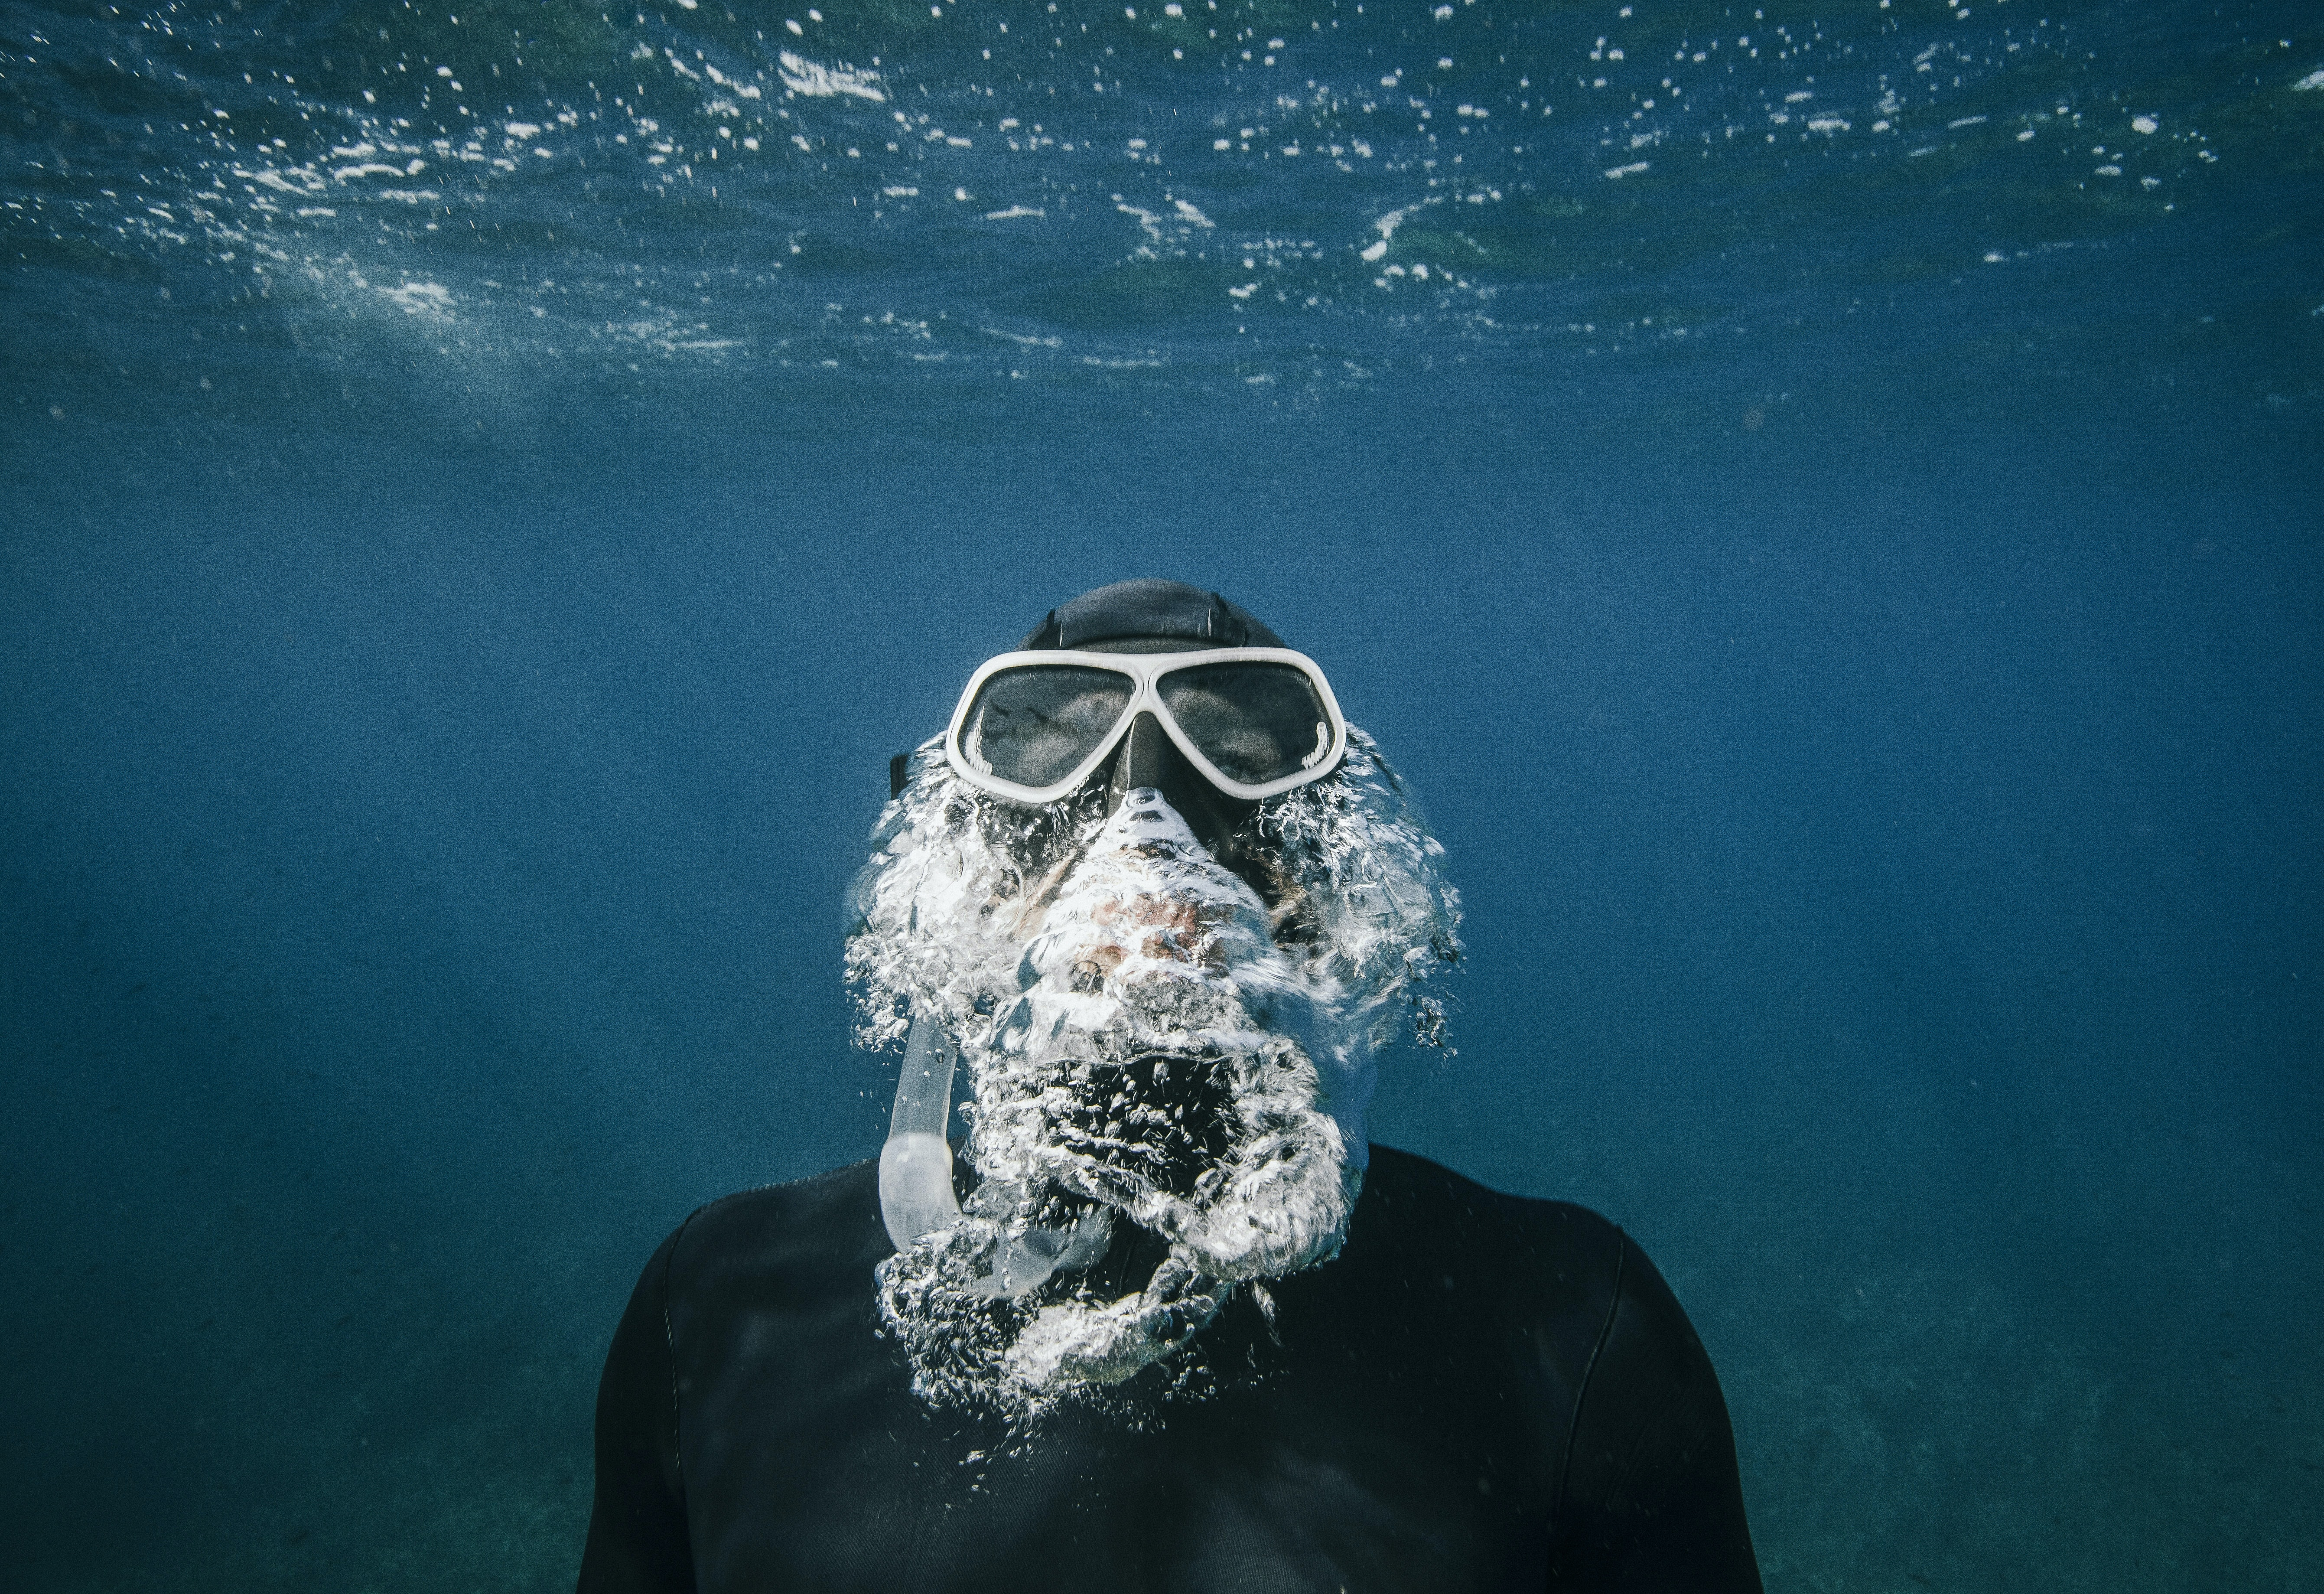 person with snorkle and goggles swimming underwater